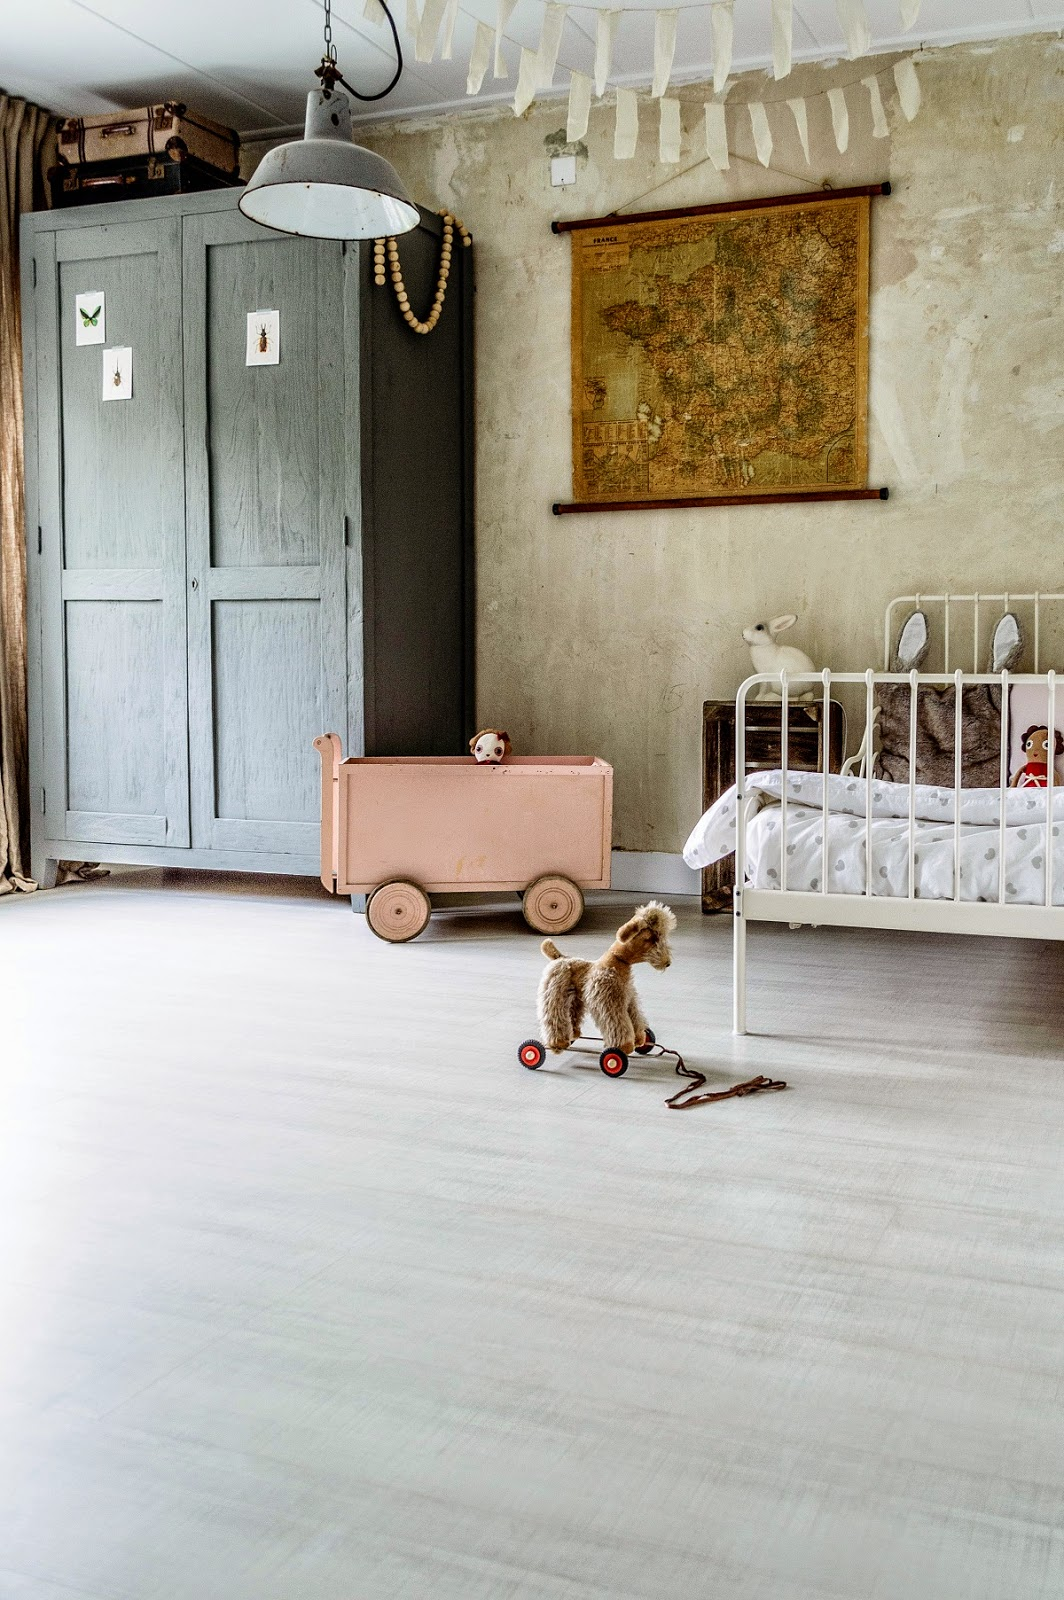 Kids-bedroom-with-classic-vintage-toys-on-display